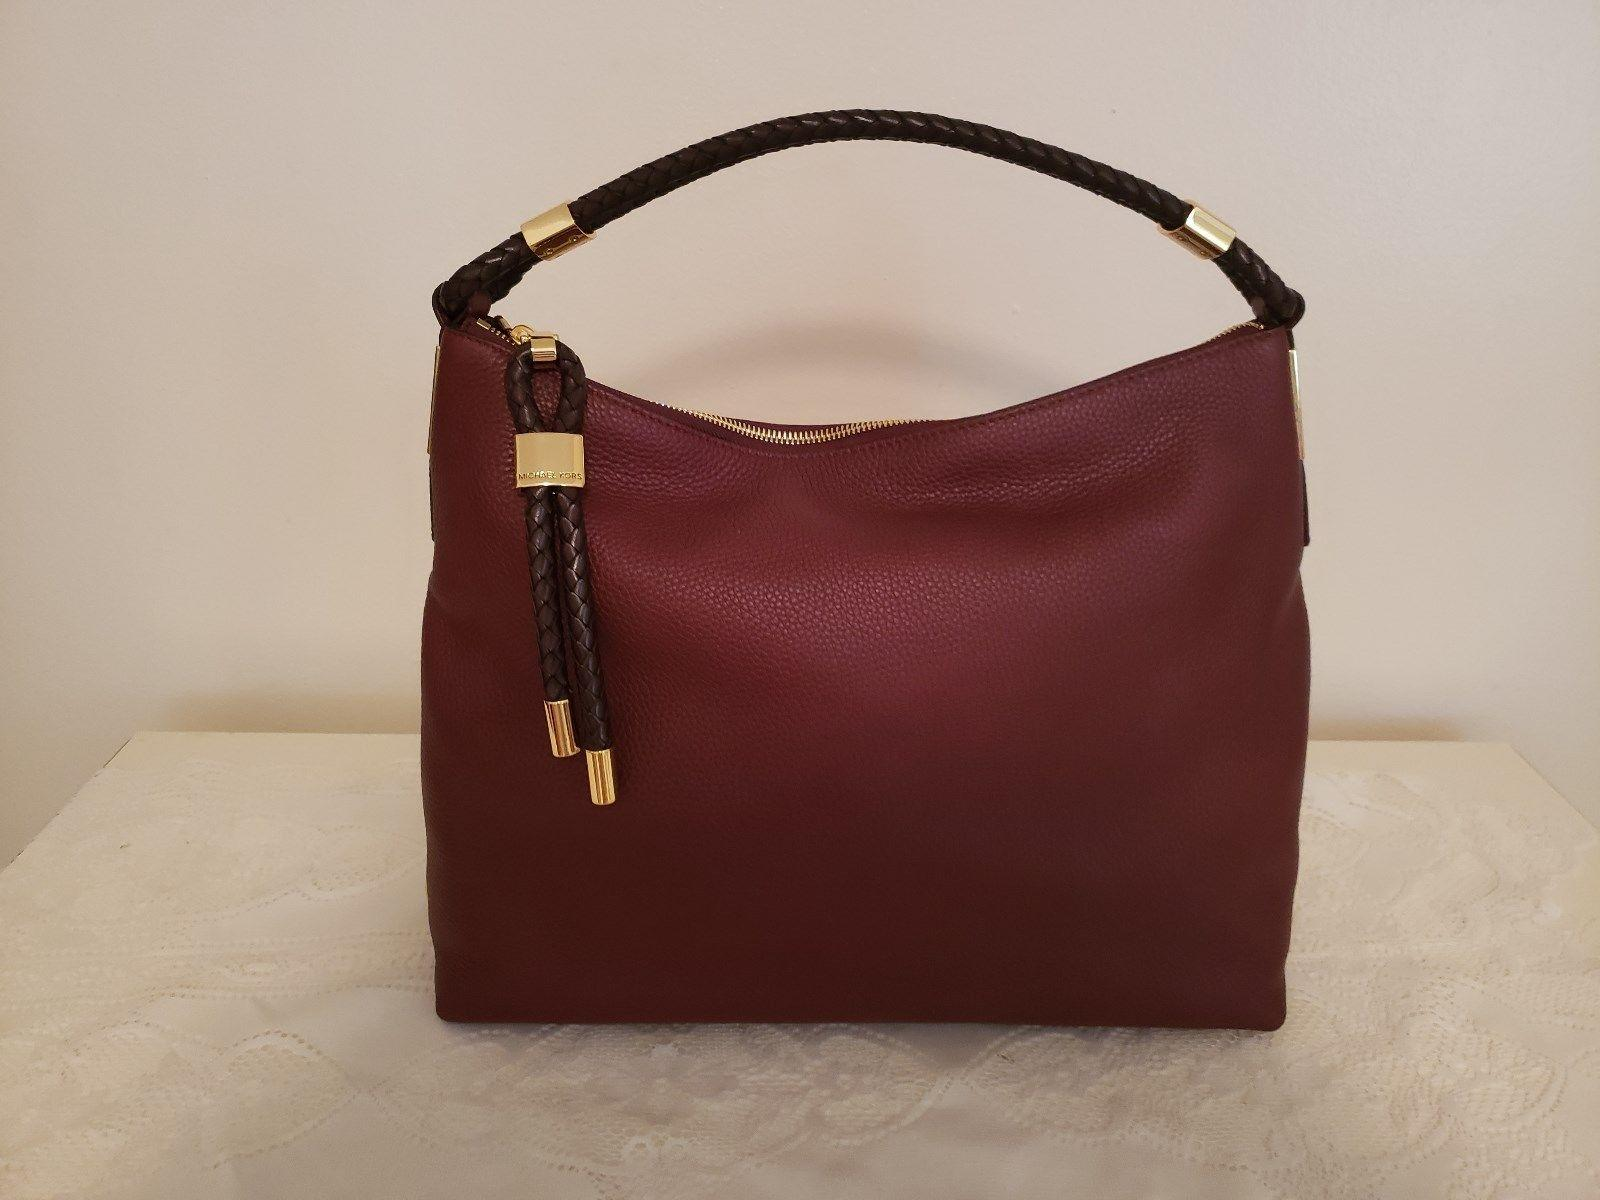 3957e4a3da9f ... new arrivals michael michael kors skorpios merlot leather shoulder bag  tradesy 18600 14e11